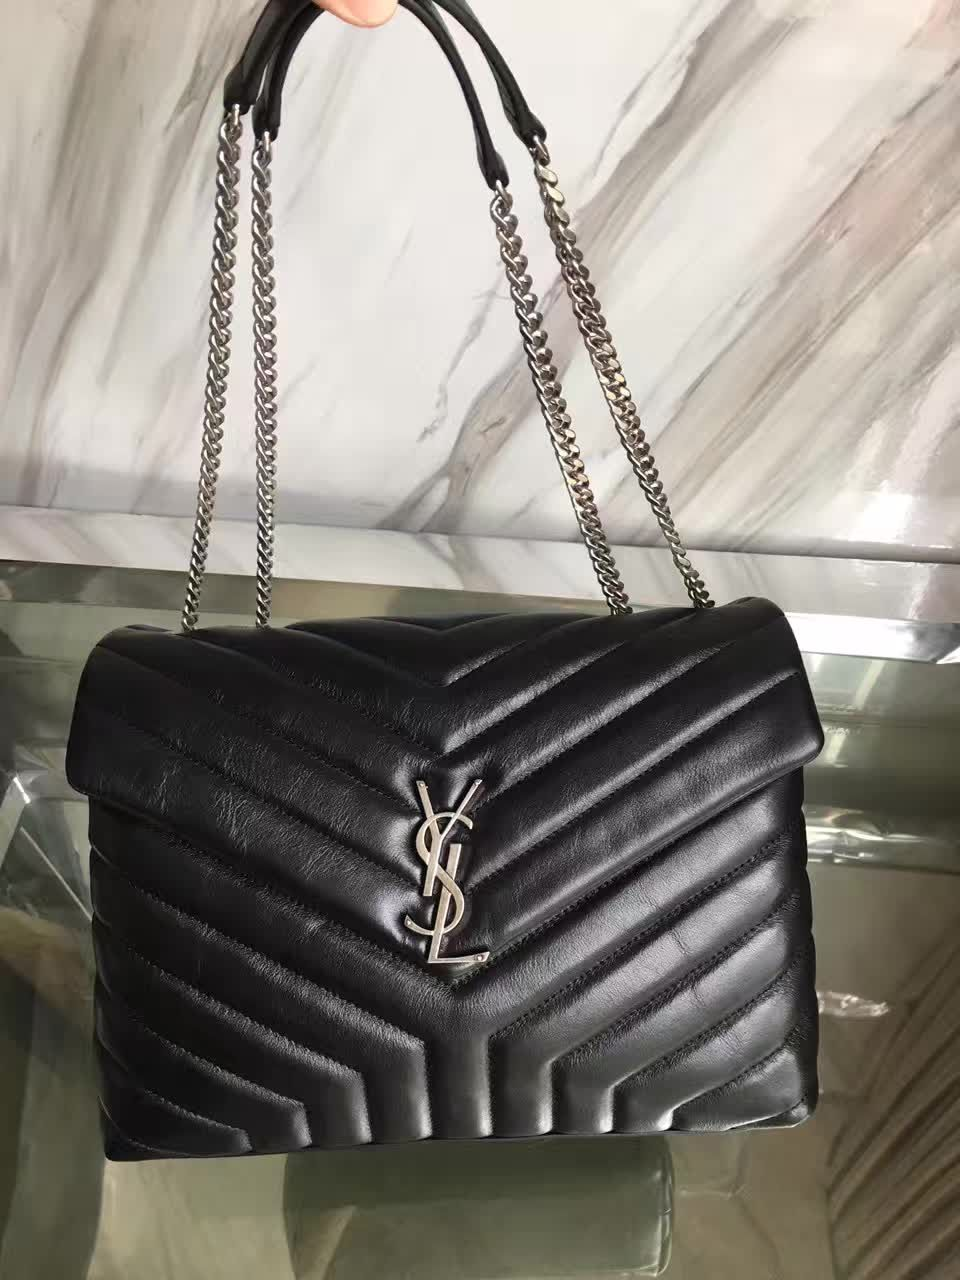 8b3b83fdfe67 The BEST YSL MONOGRAM LOULOU Counter Quality Replica Available Online!  Experience the Designer Discreet difference by shopping with us today!